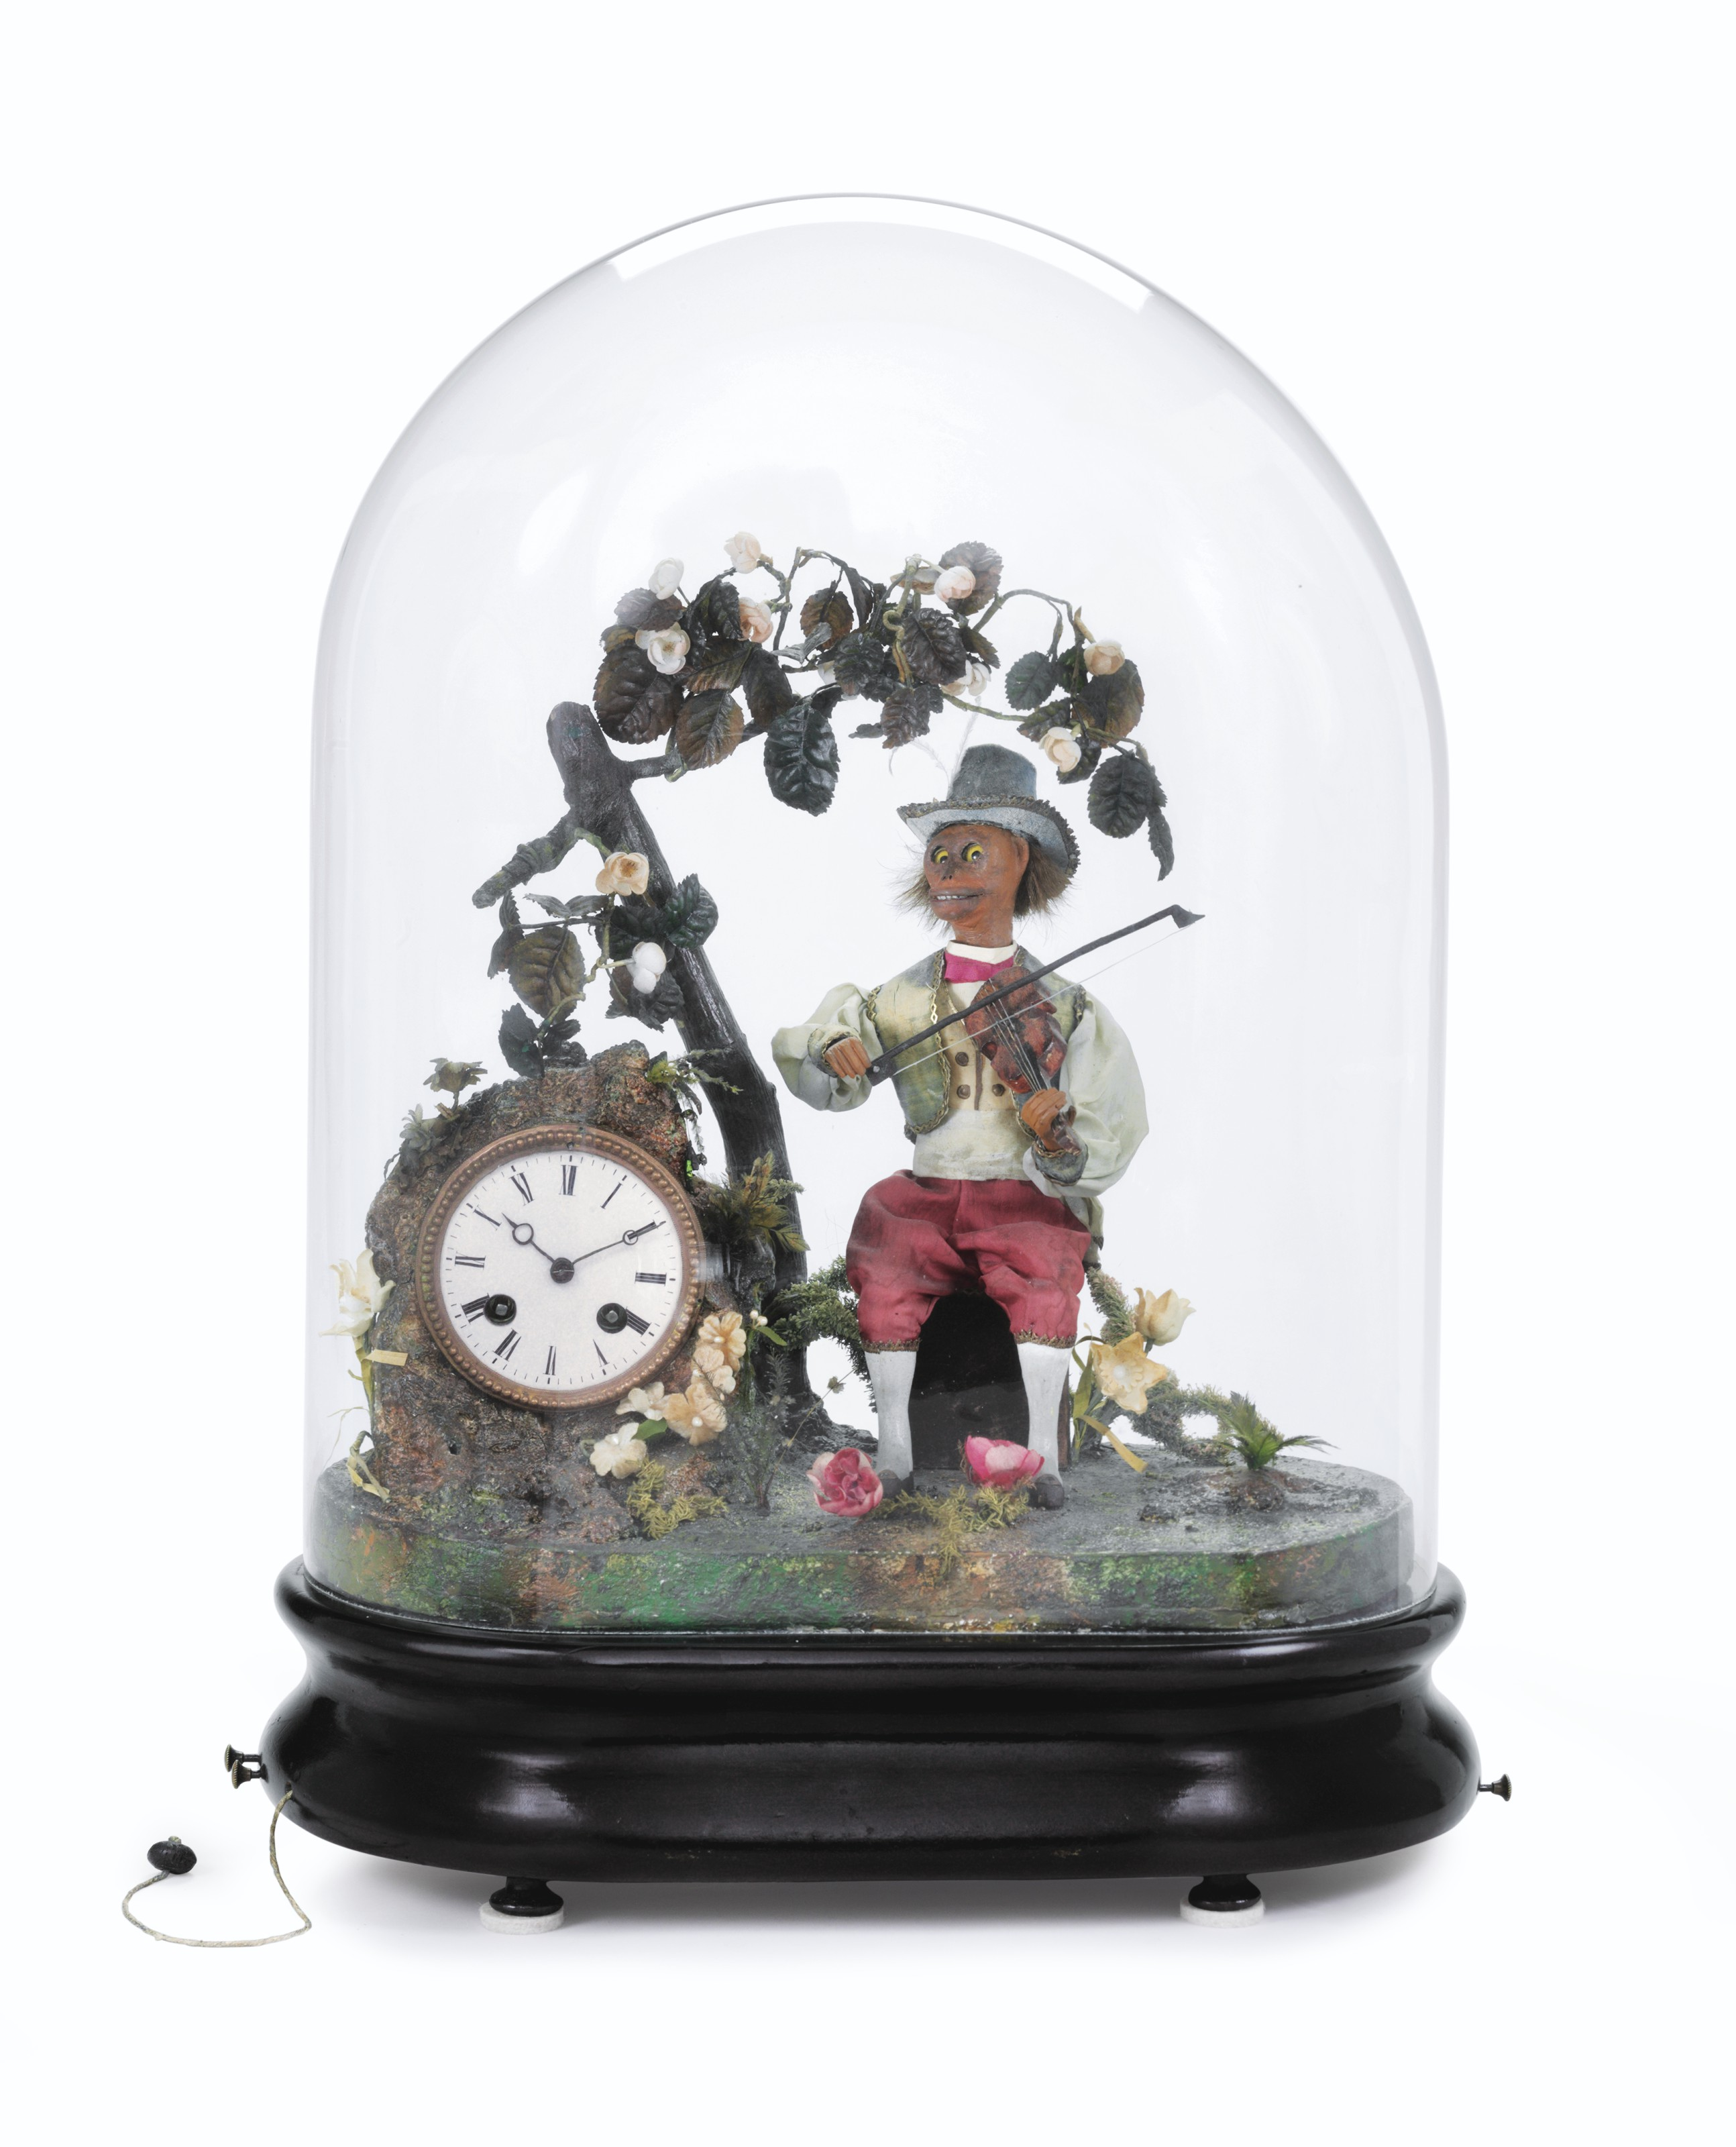 A Very Rare Musical Automaton Clock with Two Tunes Depicting a Monkey Playing a Violin, Hour and Half-Hour Striking, Two-Week Going